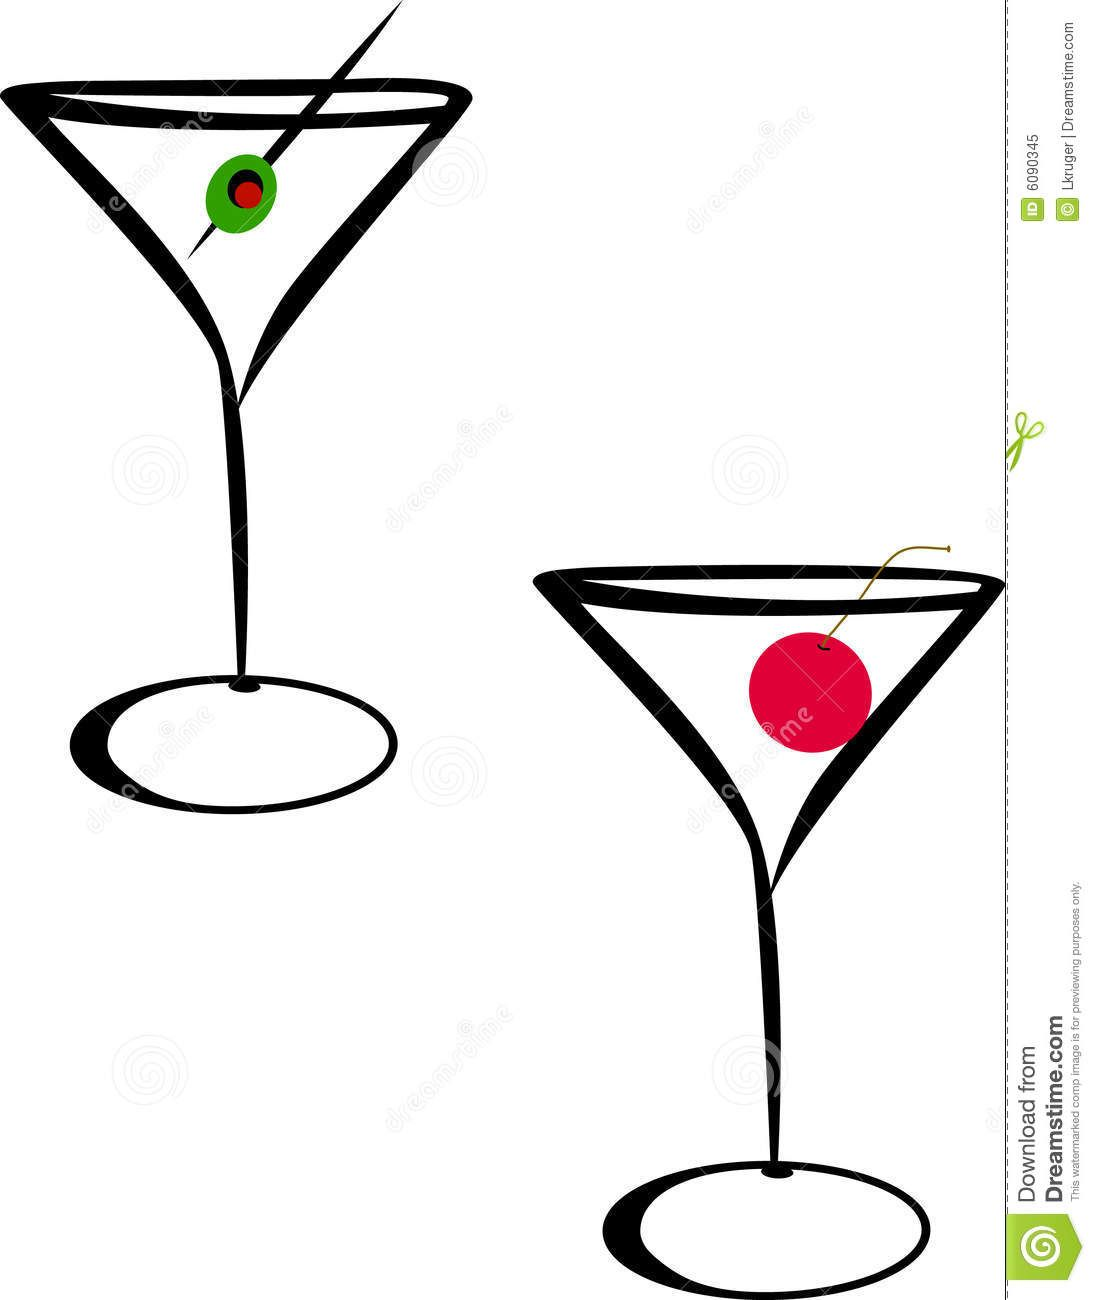 cocktail glass clipart free clip art images blog line art ideas rh pinterest com clipart martini glass clip art martini glass